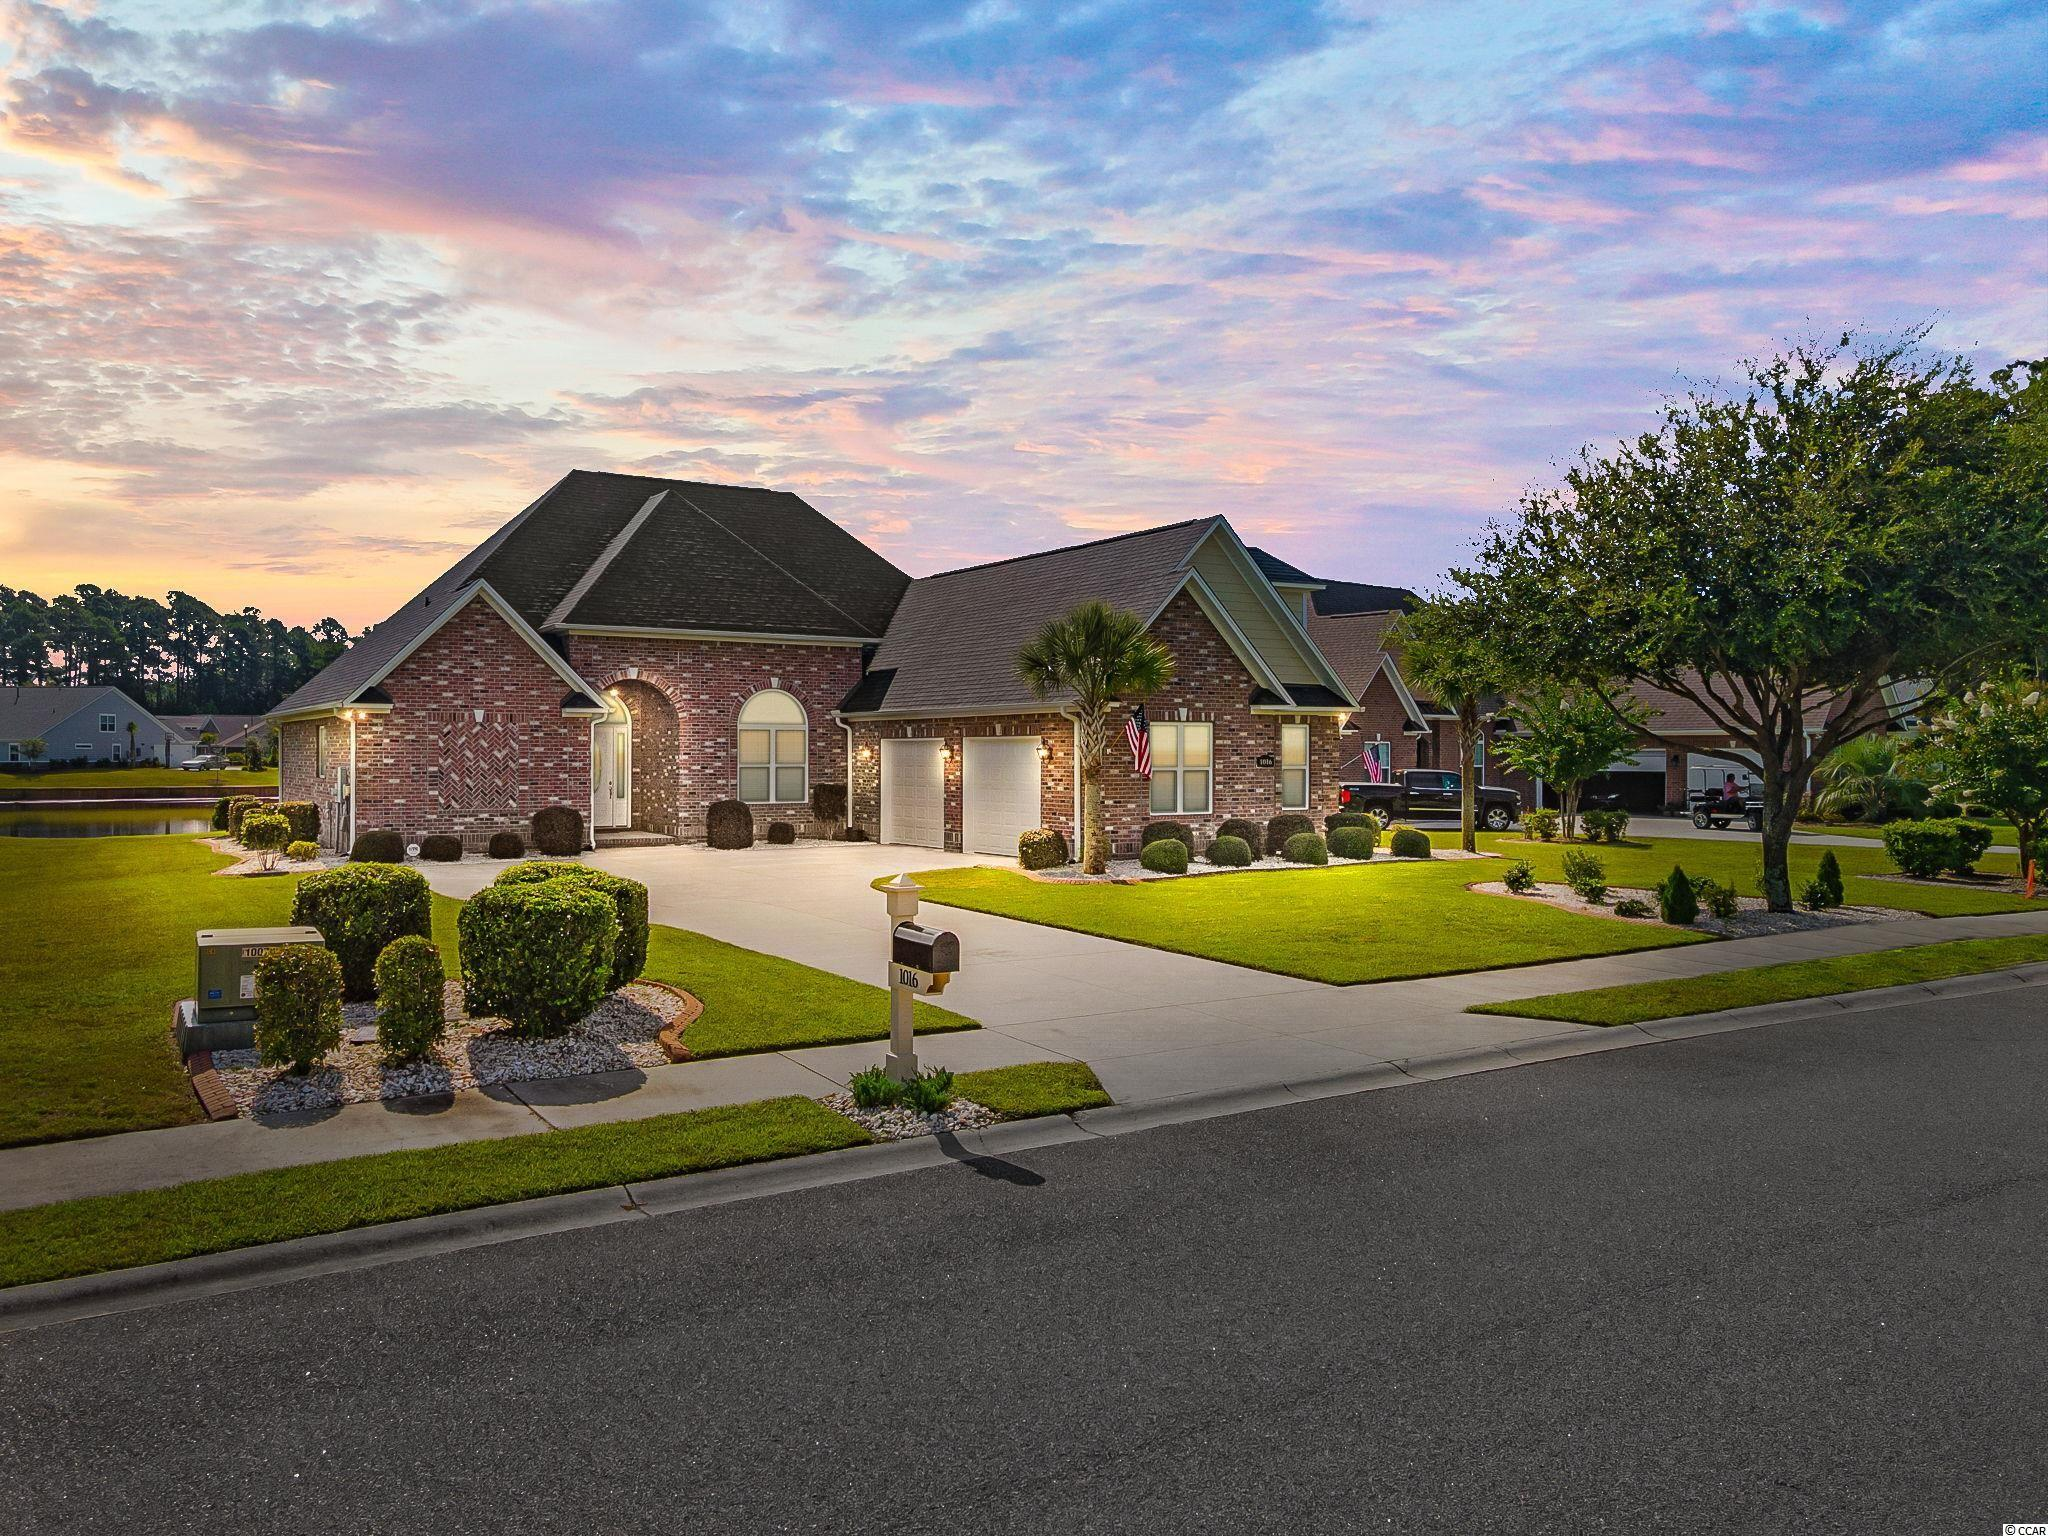 Don't miss this rare opportunity to own this better than new 4 bedroom, 3.5 bath home with an oversized 2 car garage on the large lake in the highly sought-after luxury lake front community of Wild Wing Plantation. This beautiful home is not your standard builder grade home, this is a custom-built home loaded with many extras and additional features. The stately front entrance and foyer welcomes you into this breathtaking home. The Great Room has stately 10' high ceilings, hardwood flooring, and gas fireplace. To the right is a formal dining room with 10 dramatic ceilings, wainscoting and large palladium window. The chef's kitchen features custom cabinets, luxury granite countertops, stainless steel appliances, tile backsplash, tile flooring, two pantries and even a breakfast area. Spectacular first floor master bedroom suite with views of the large lake, double tray ceiling, walk-in-closet, granite countertops, whirlpool tub, tile flooring, tile walk-in-shower, and his and her sinks. There are two additional bedrooms on the first floor. Upstairs there is a large den/game room area, additional bedroom, with full bath.   The rear of the home faces down the large lake, has a large screened in porch, paved patio area that offer unparalleled enjoyment of the many SC lake birds, including blue heron, egrets and even eagles. The exterior of the home features an impeccably manicured professionally landscaped backyard, with irrigation system and separate water meter.  Wild Wing Plantation has over 180 acres of lakes for you to explore and enjoy. You can even add your own private boat dock, use your boat to explore the lakes, fish and even take your boat to the clubhouse to also enjoy the many amenities there. The community features custom built brick and stucco style luxury homes. Association amenities included large clubhouse, multiple outdoor pools, hot tub, 80' waterslide, tennis/pickle ball courts, basketball court, new fenced in playground area, huge day dock, private 